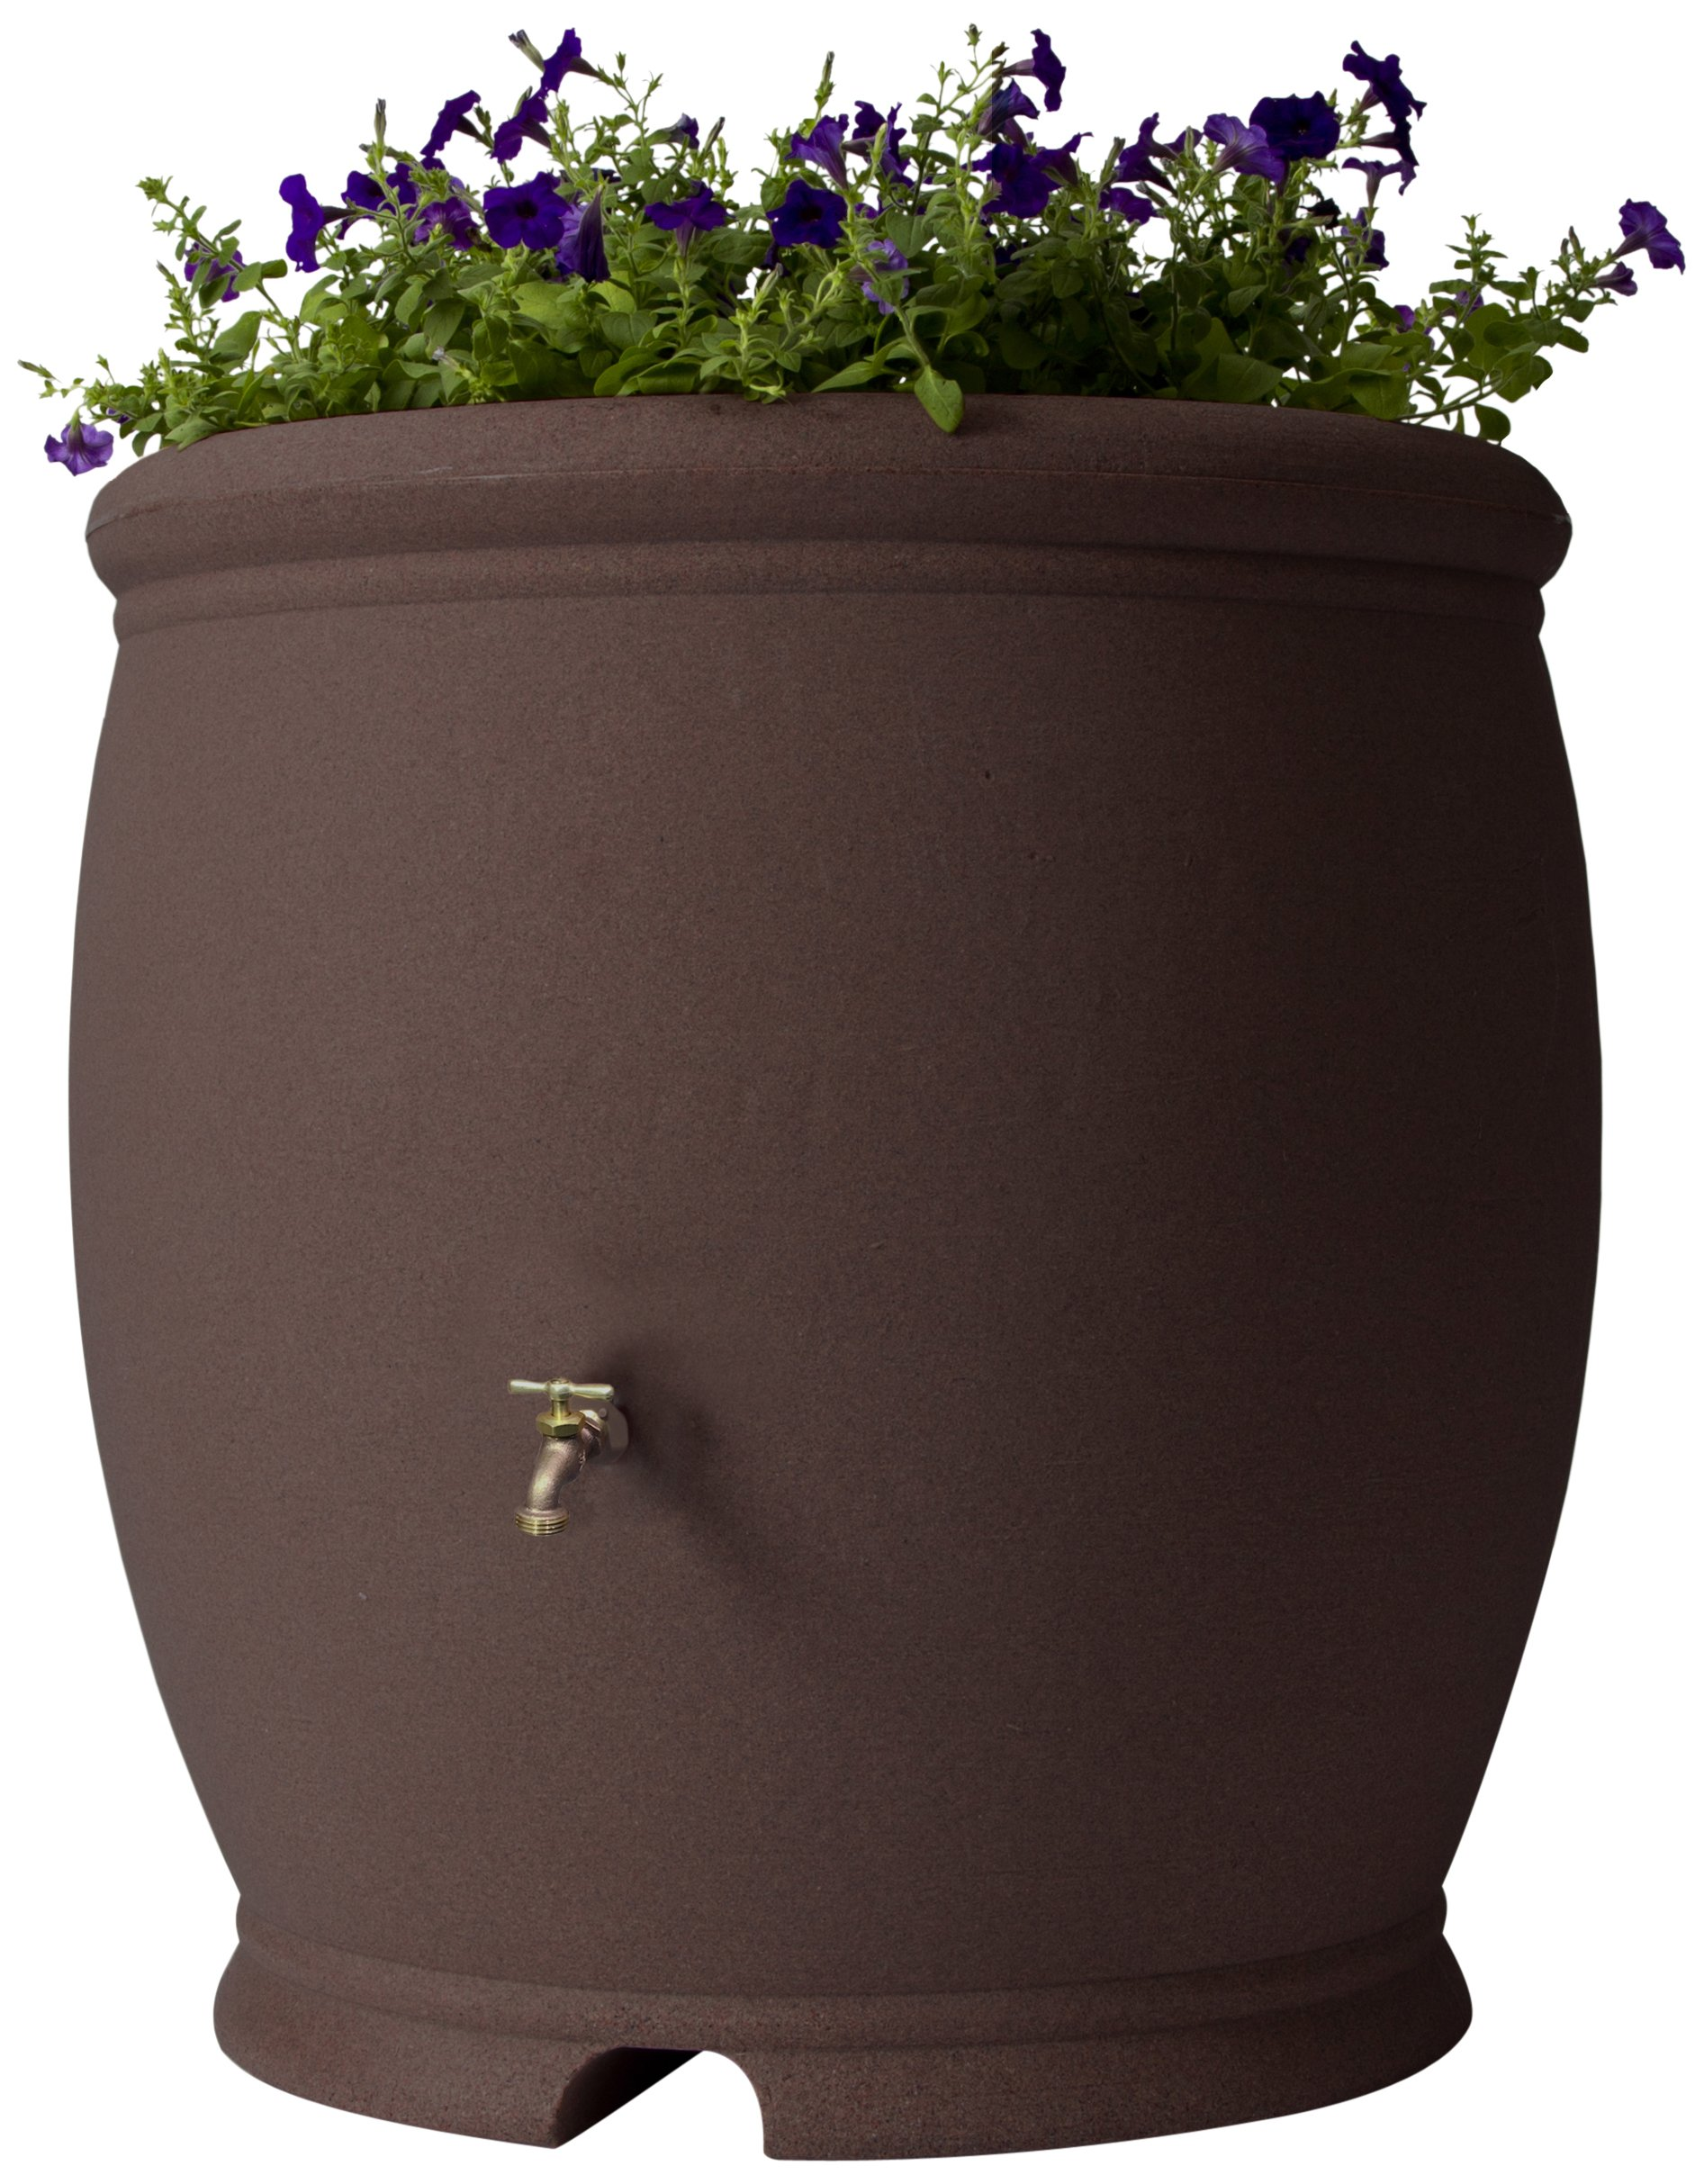 Algreen Products Barcelona Rain Barrel 100-Gallon, Brownstone by Algreen